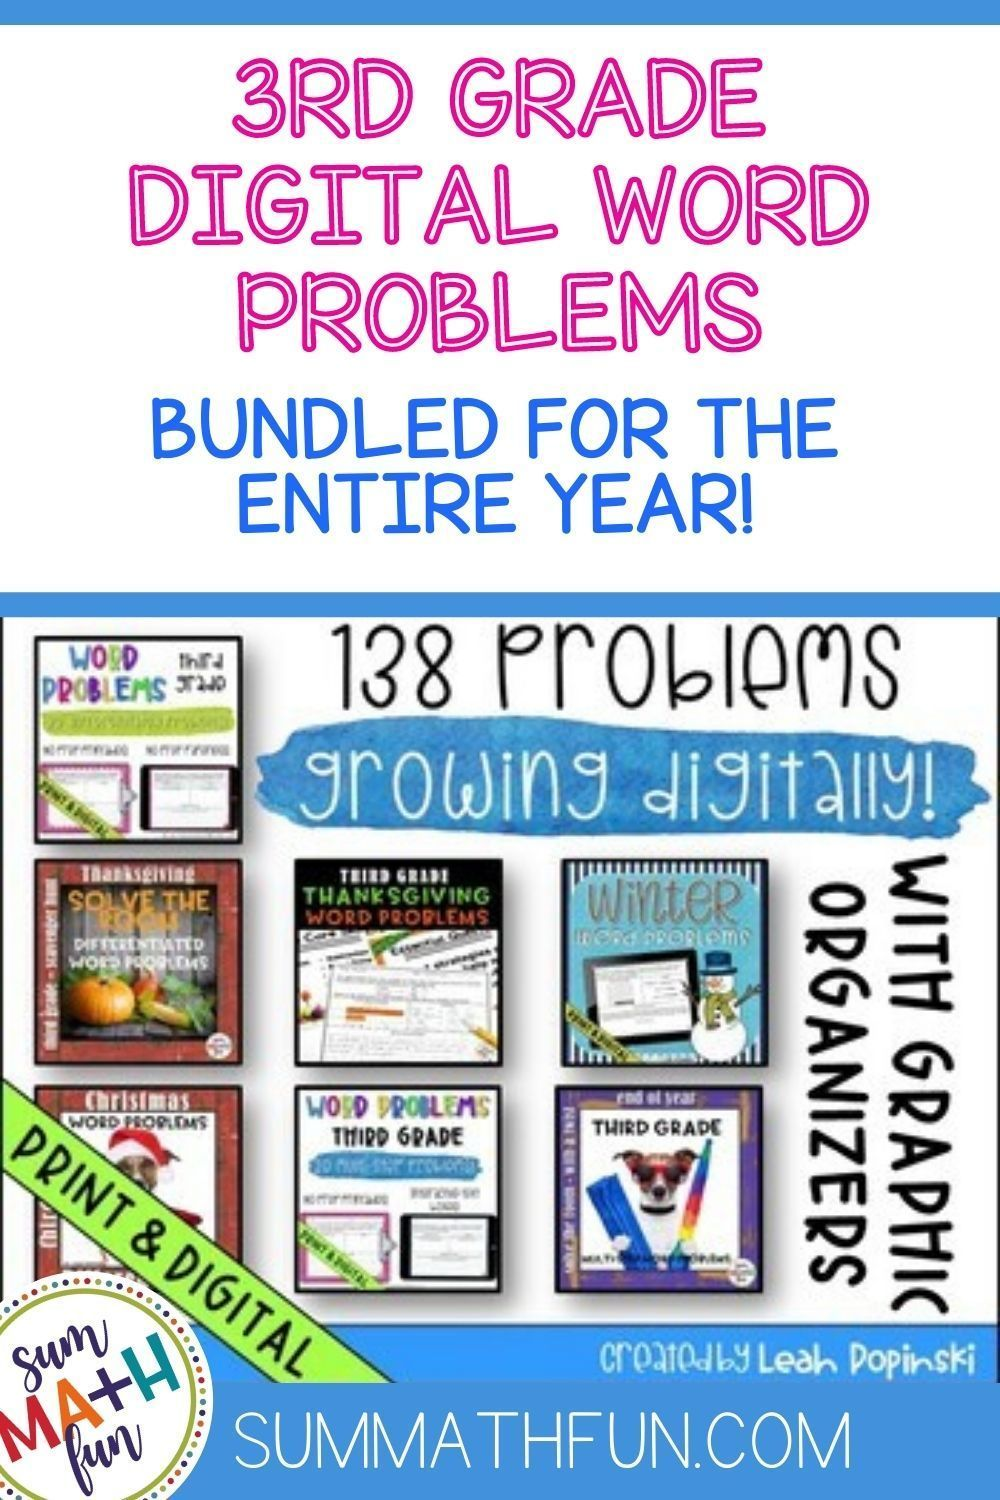 1 2 Off Digital And Print Word Problems Bundled For The Year 3rd Grade Word Problems Sum Math Fun Solving Word Problems [ 1500 x 1000 Pixel ]